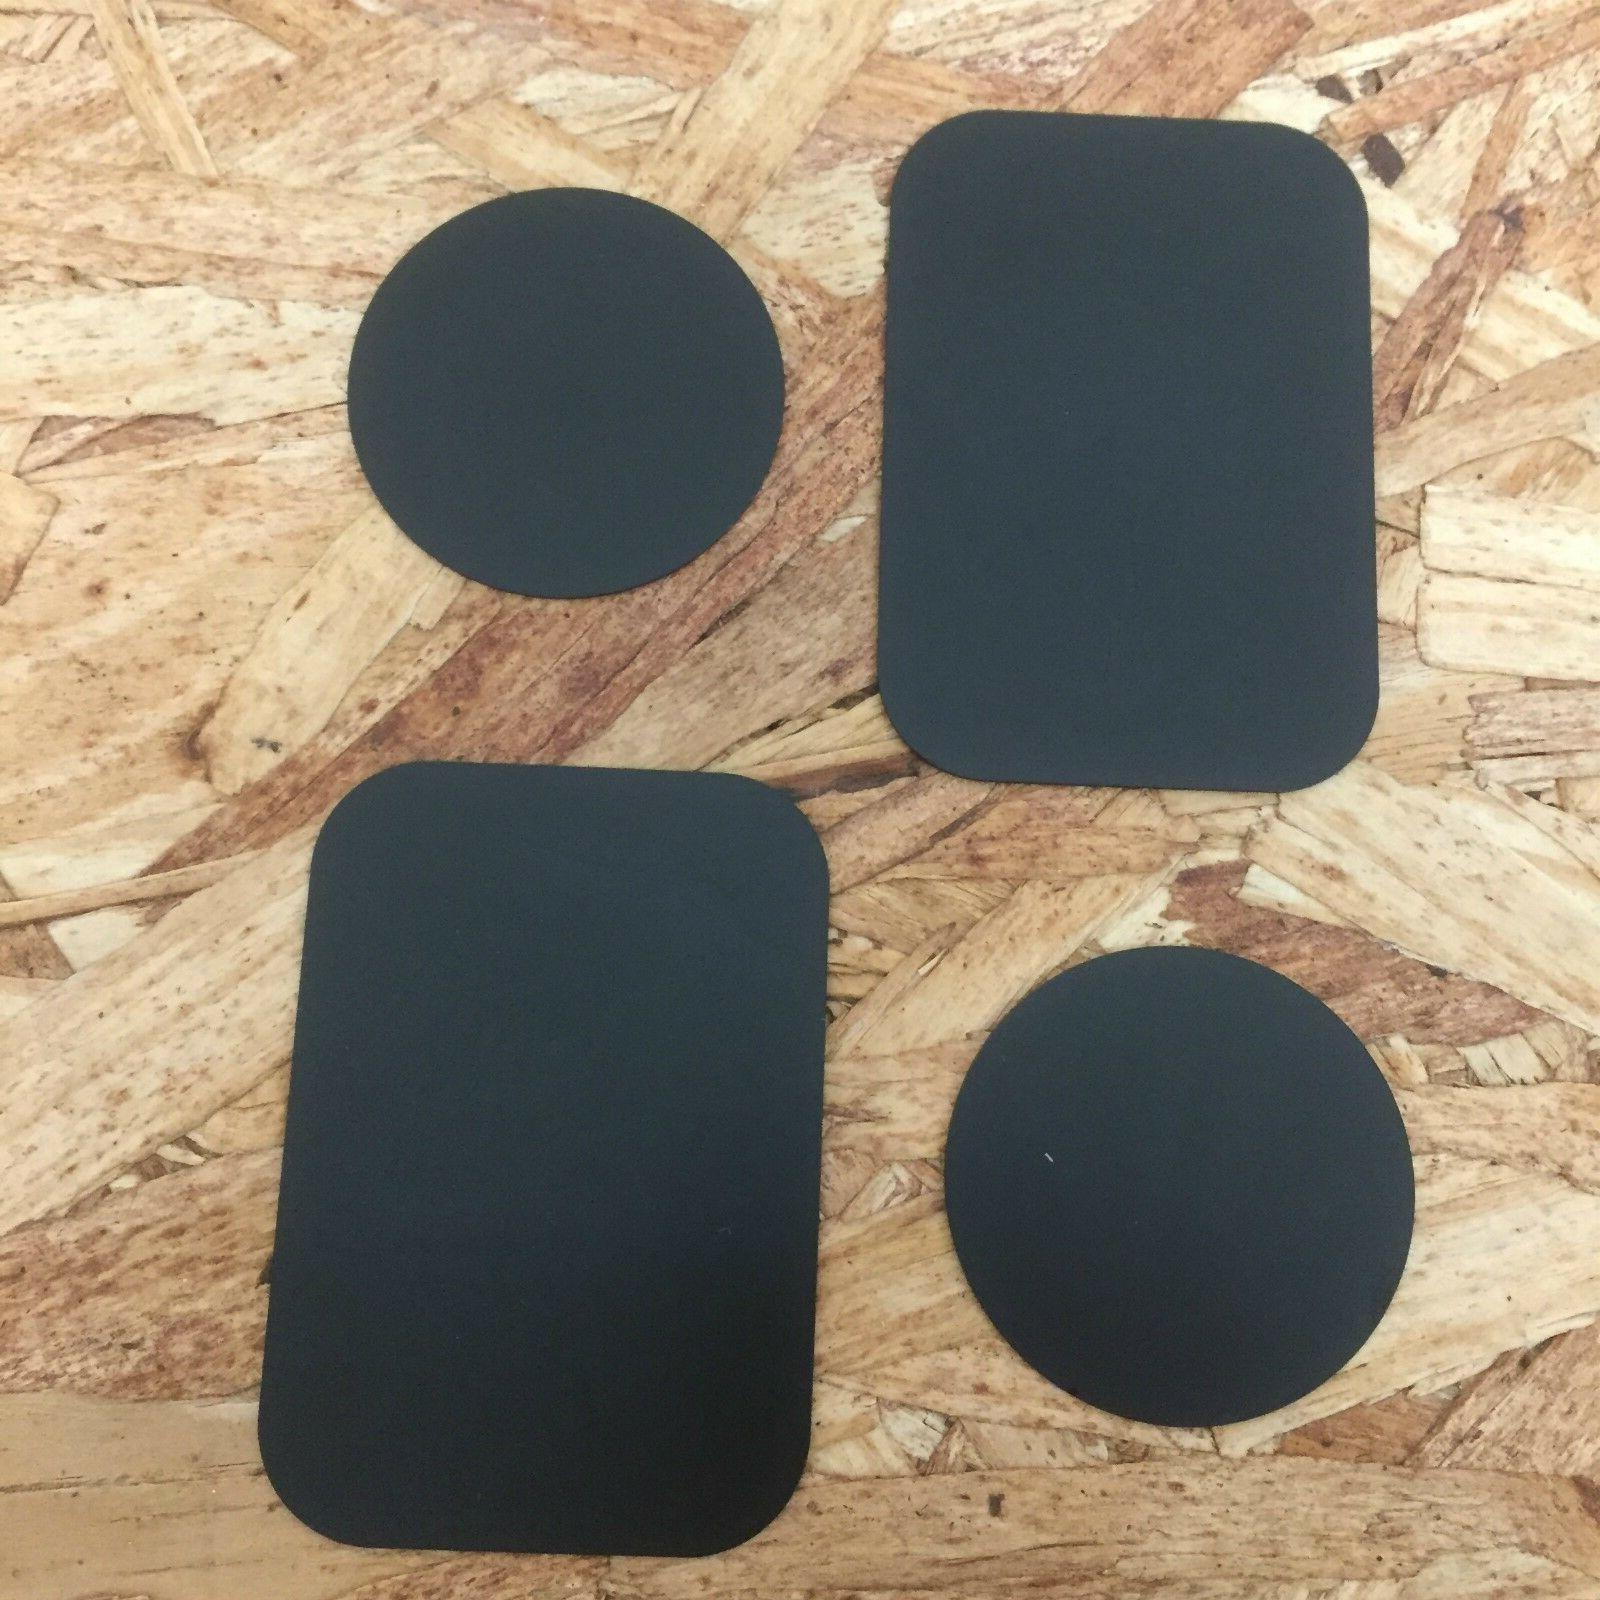 4 Pieces Metal Plate Replacement For Magnetic Car Mount Magn